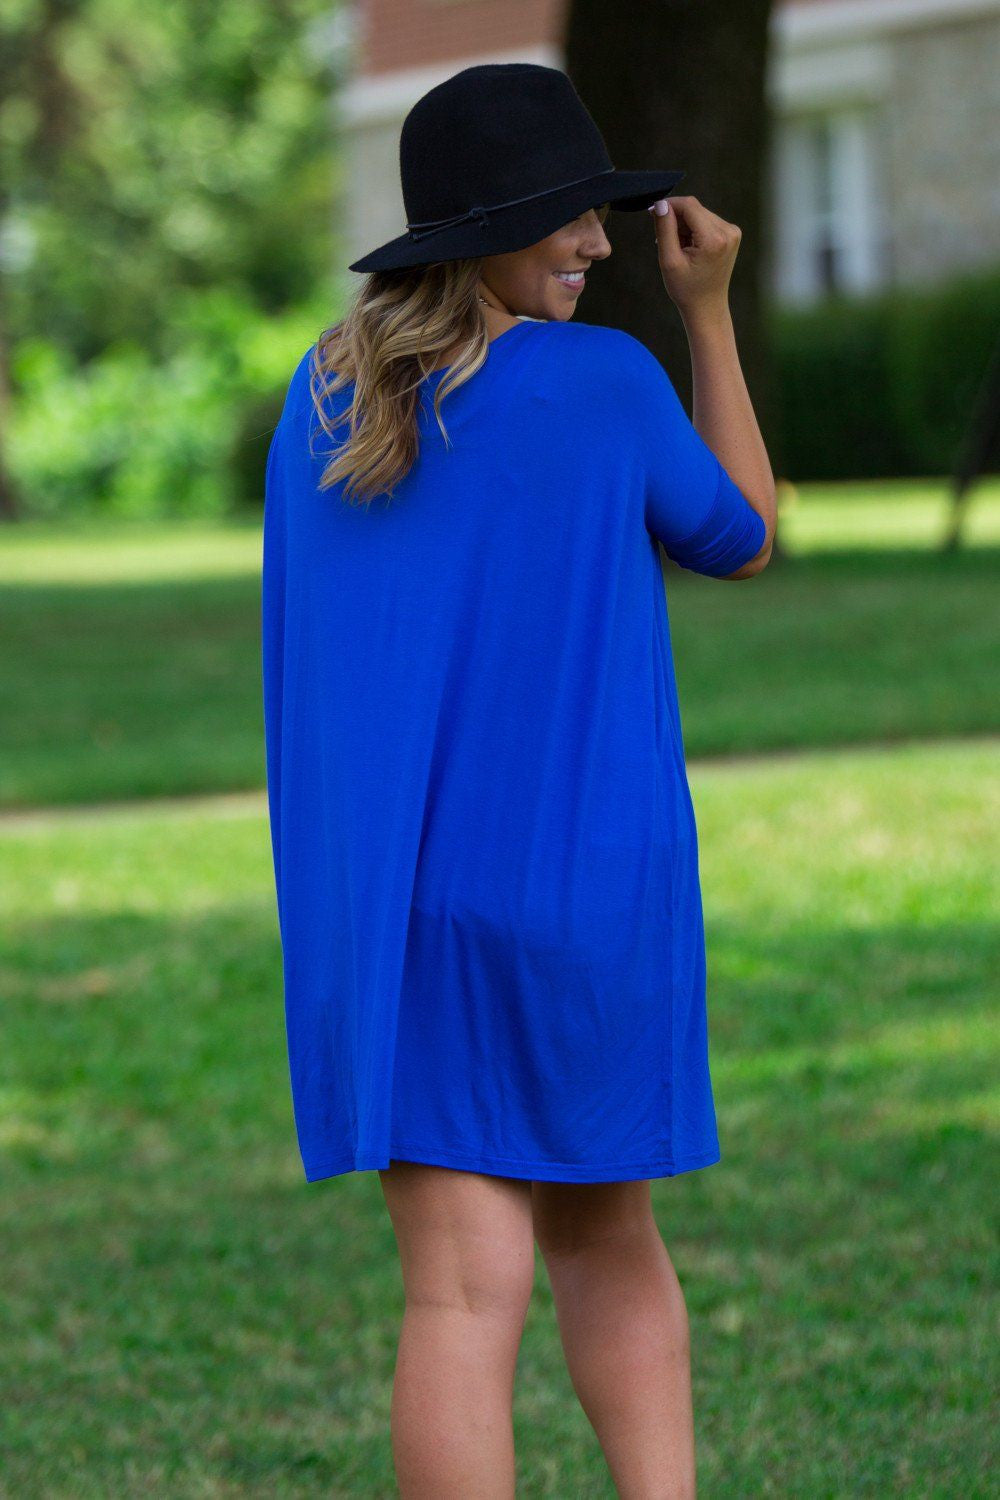 Half Sleeve Piko Tunic - Royal Blue - Piko Clothing